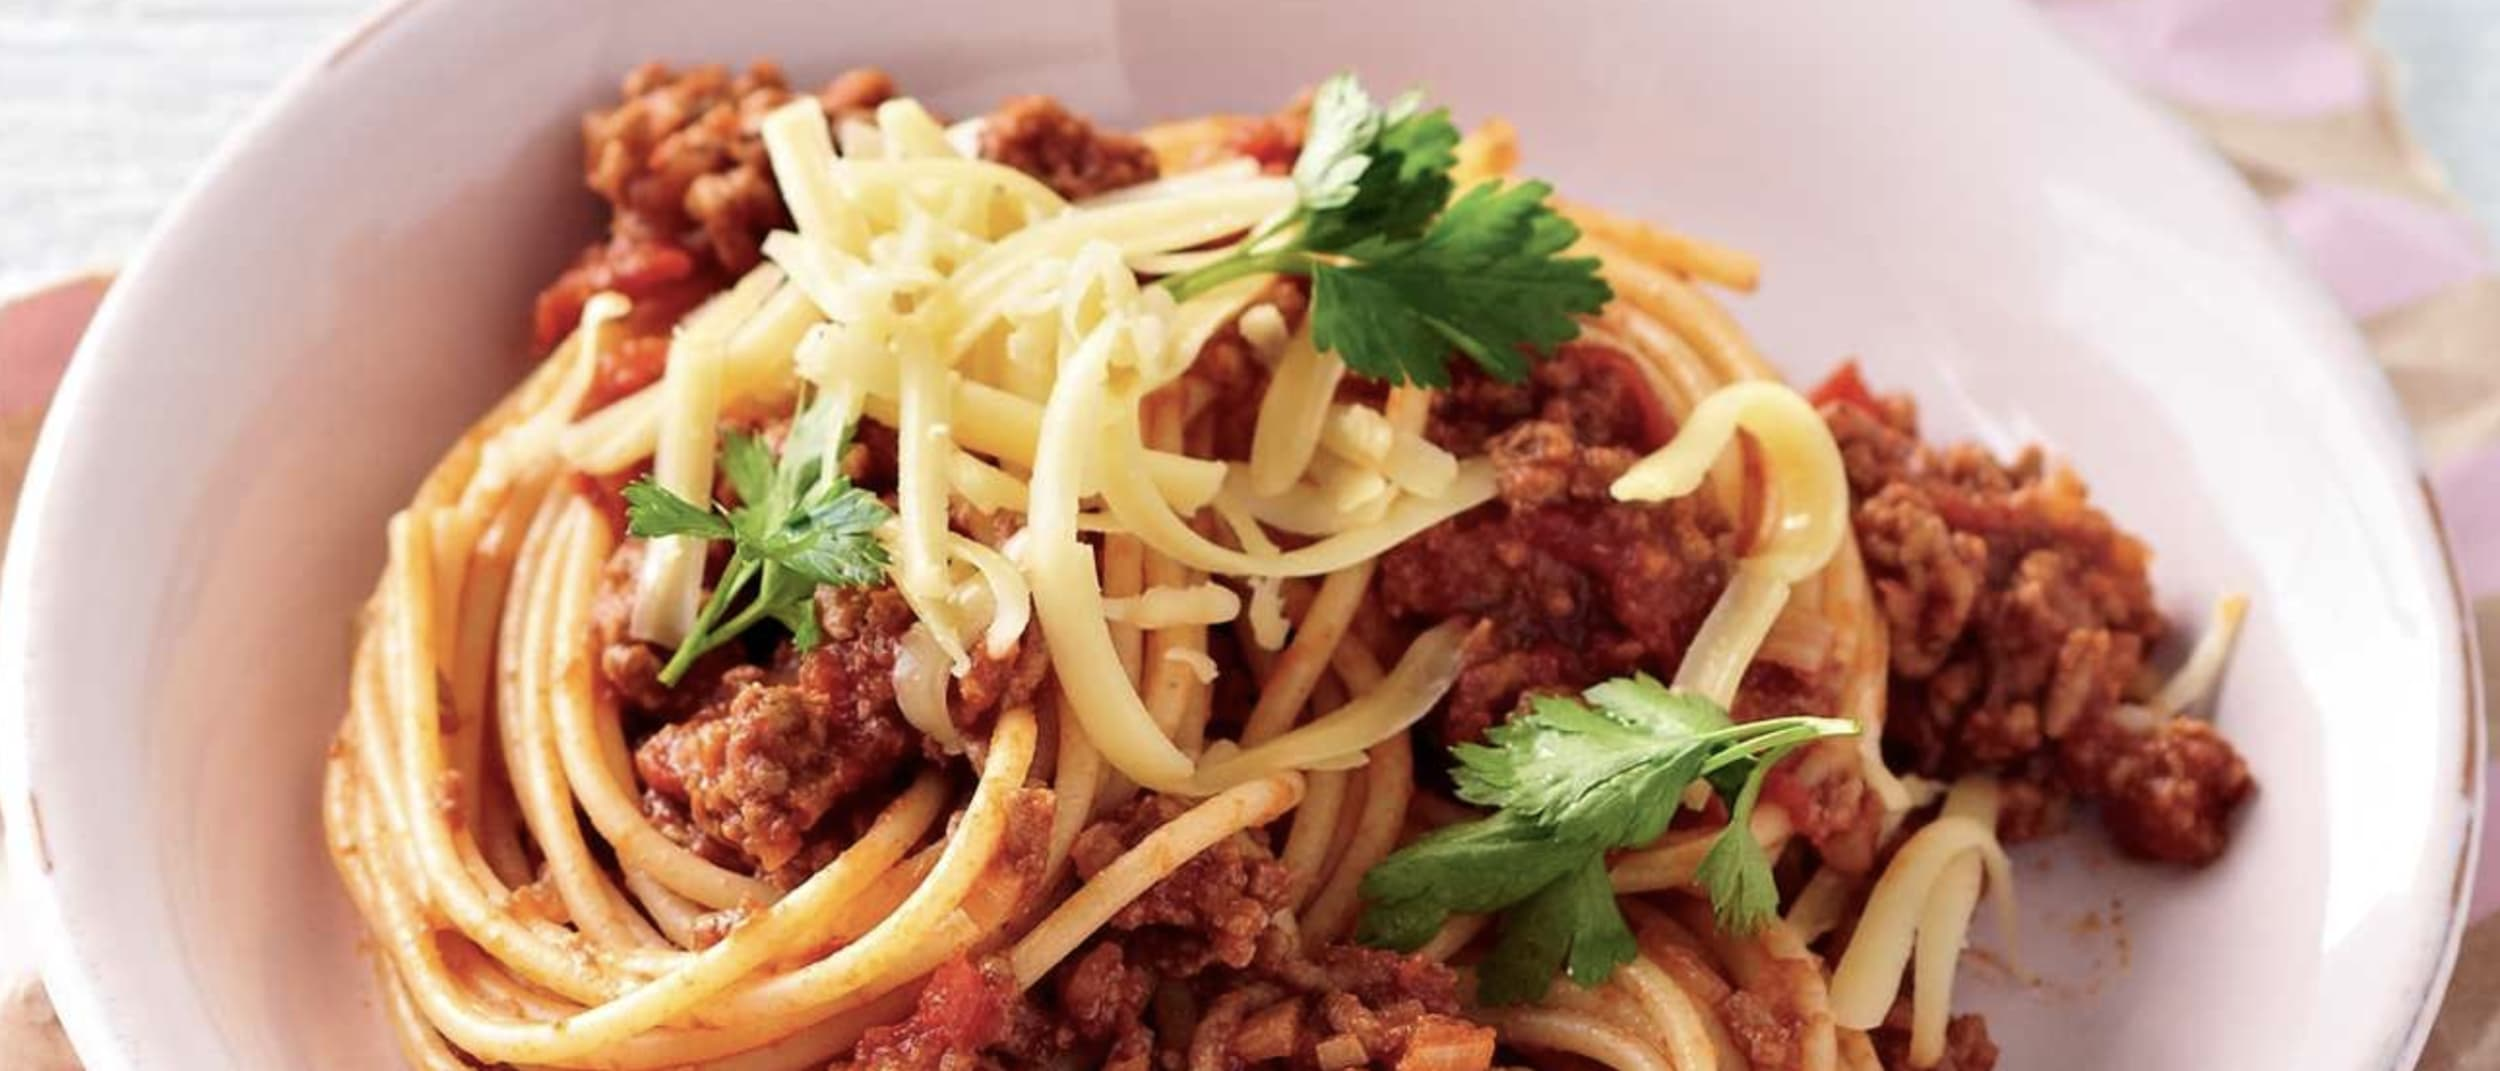 How to make the best classic spaghetti bolognese